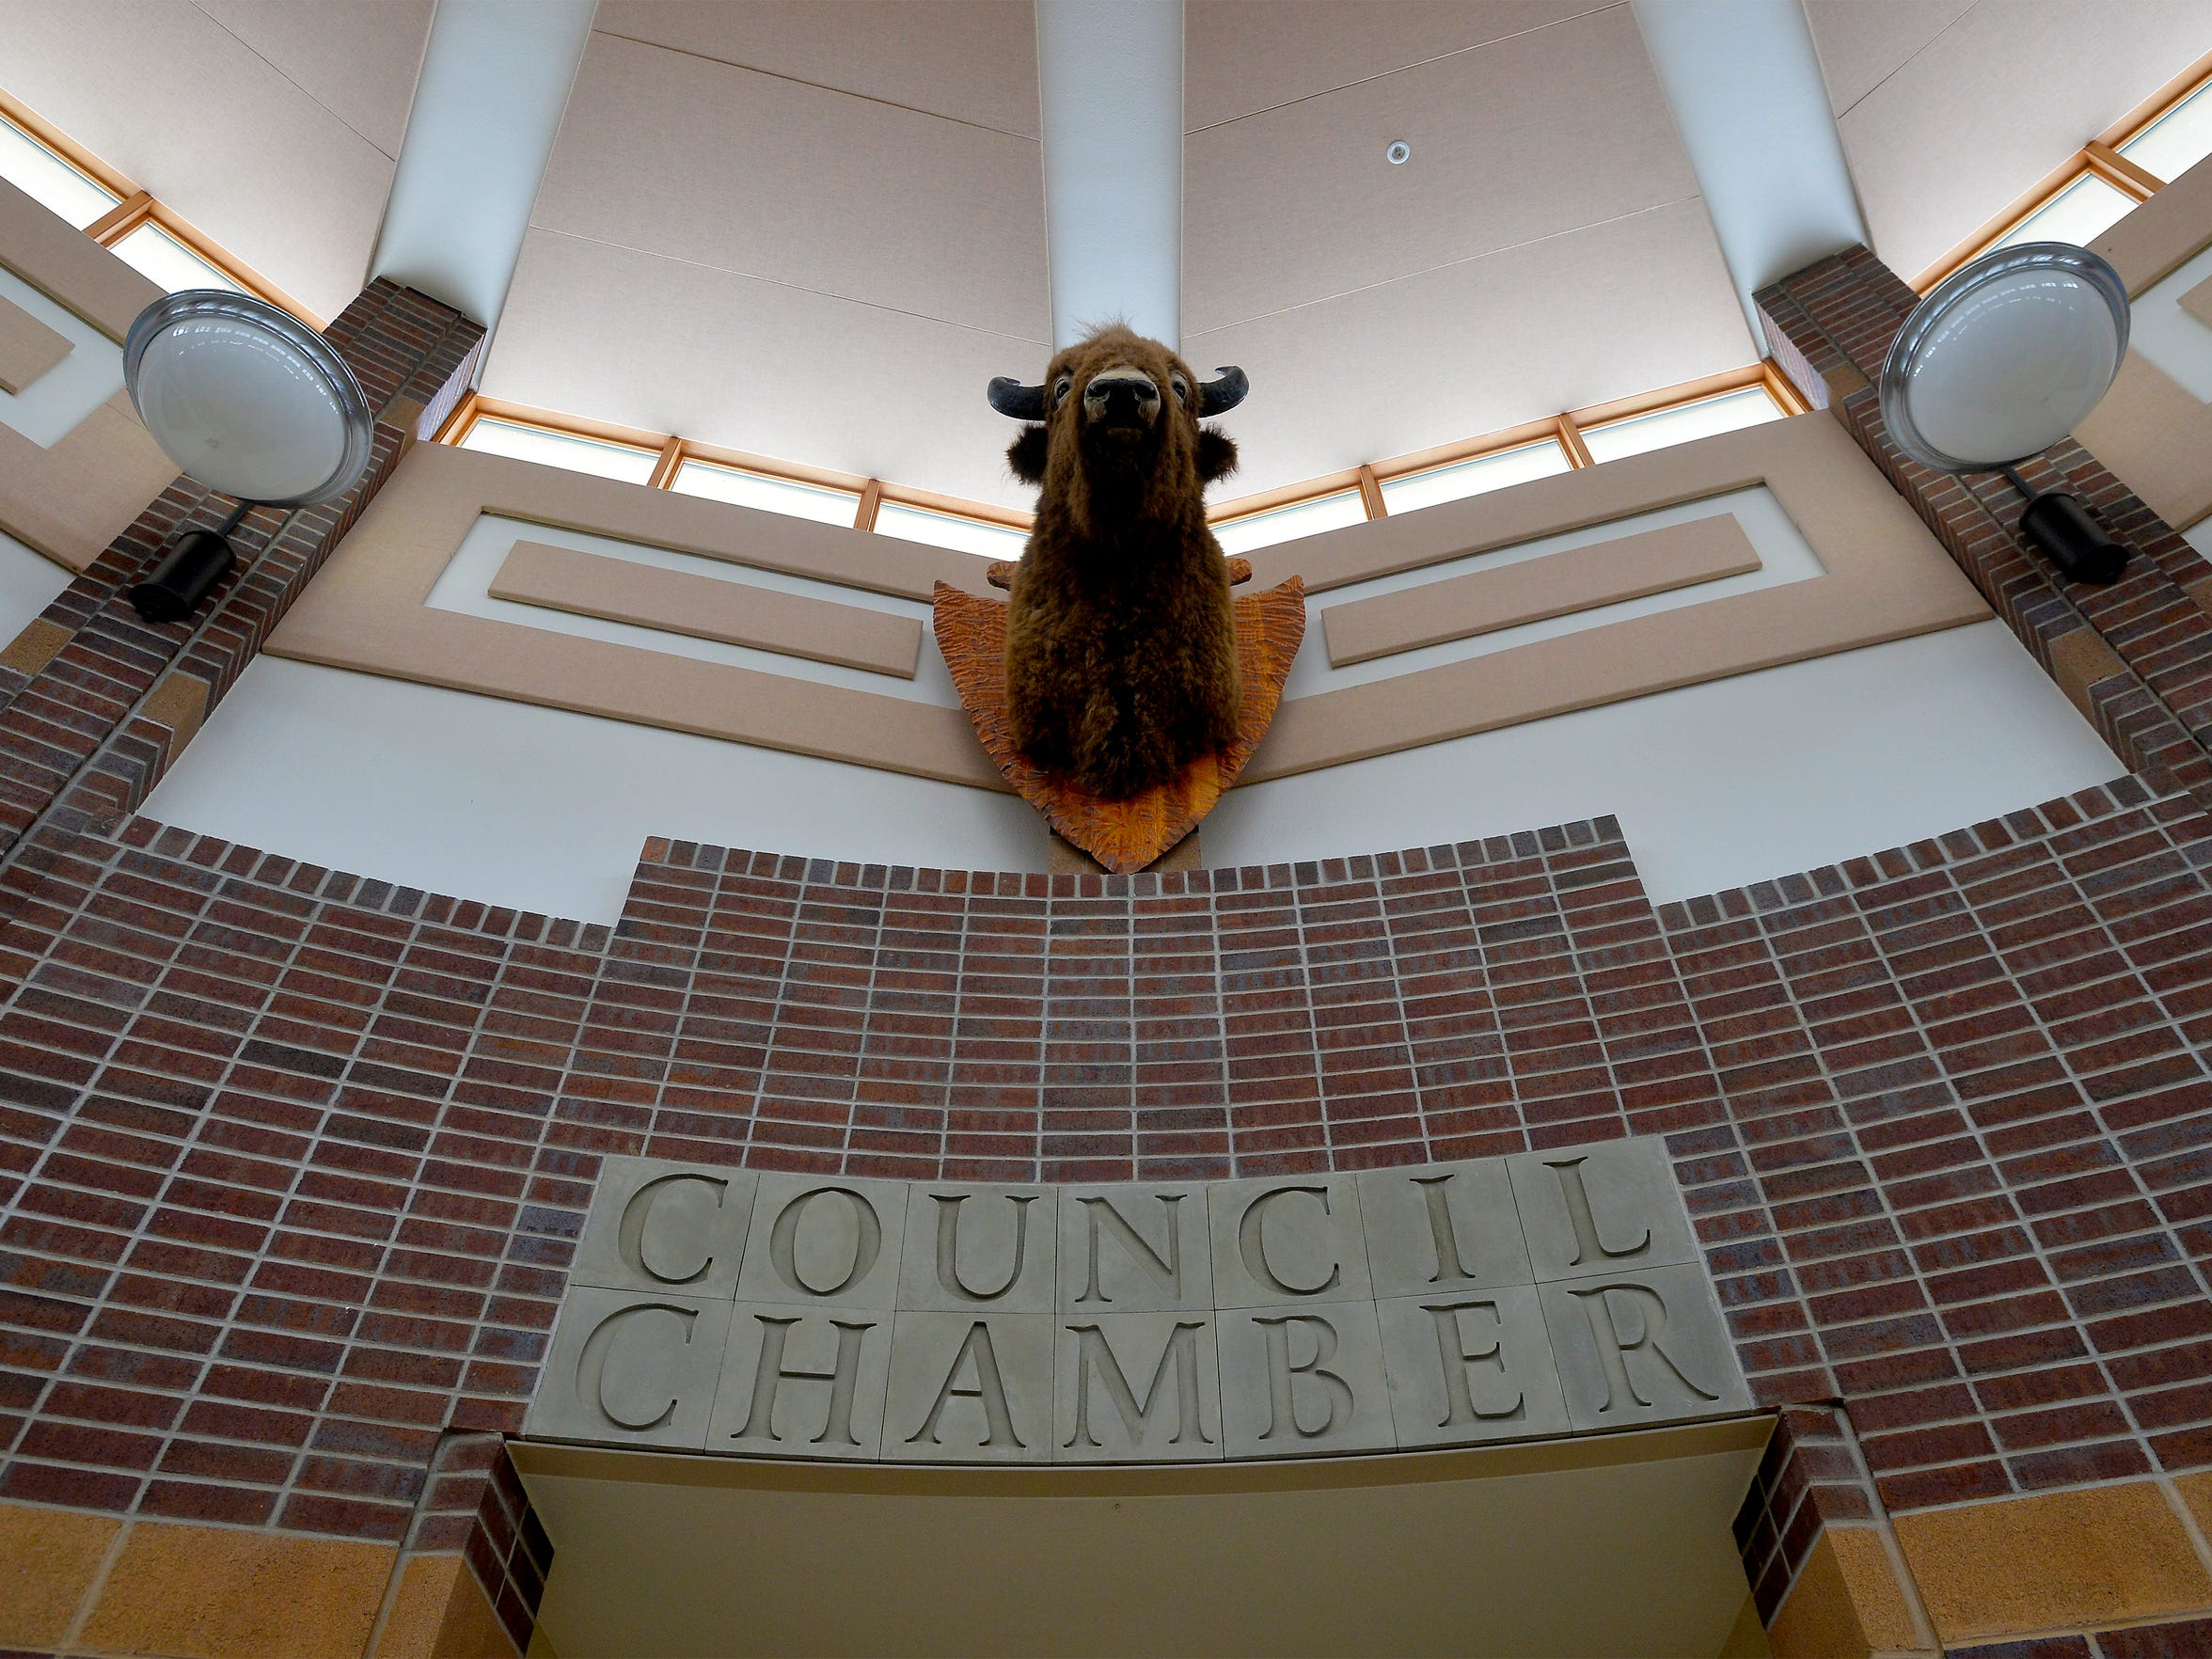 The Fort Peck Assiniboine and Sioux Tribes tribal headquarters